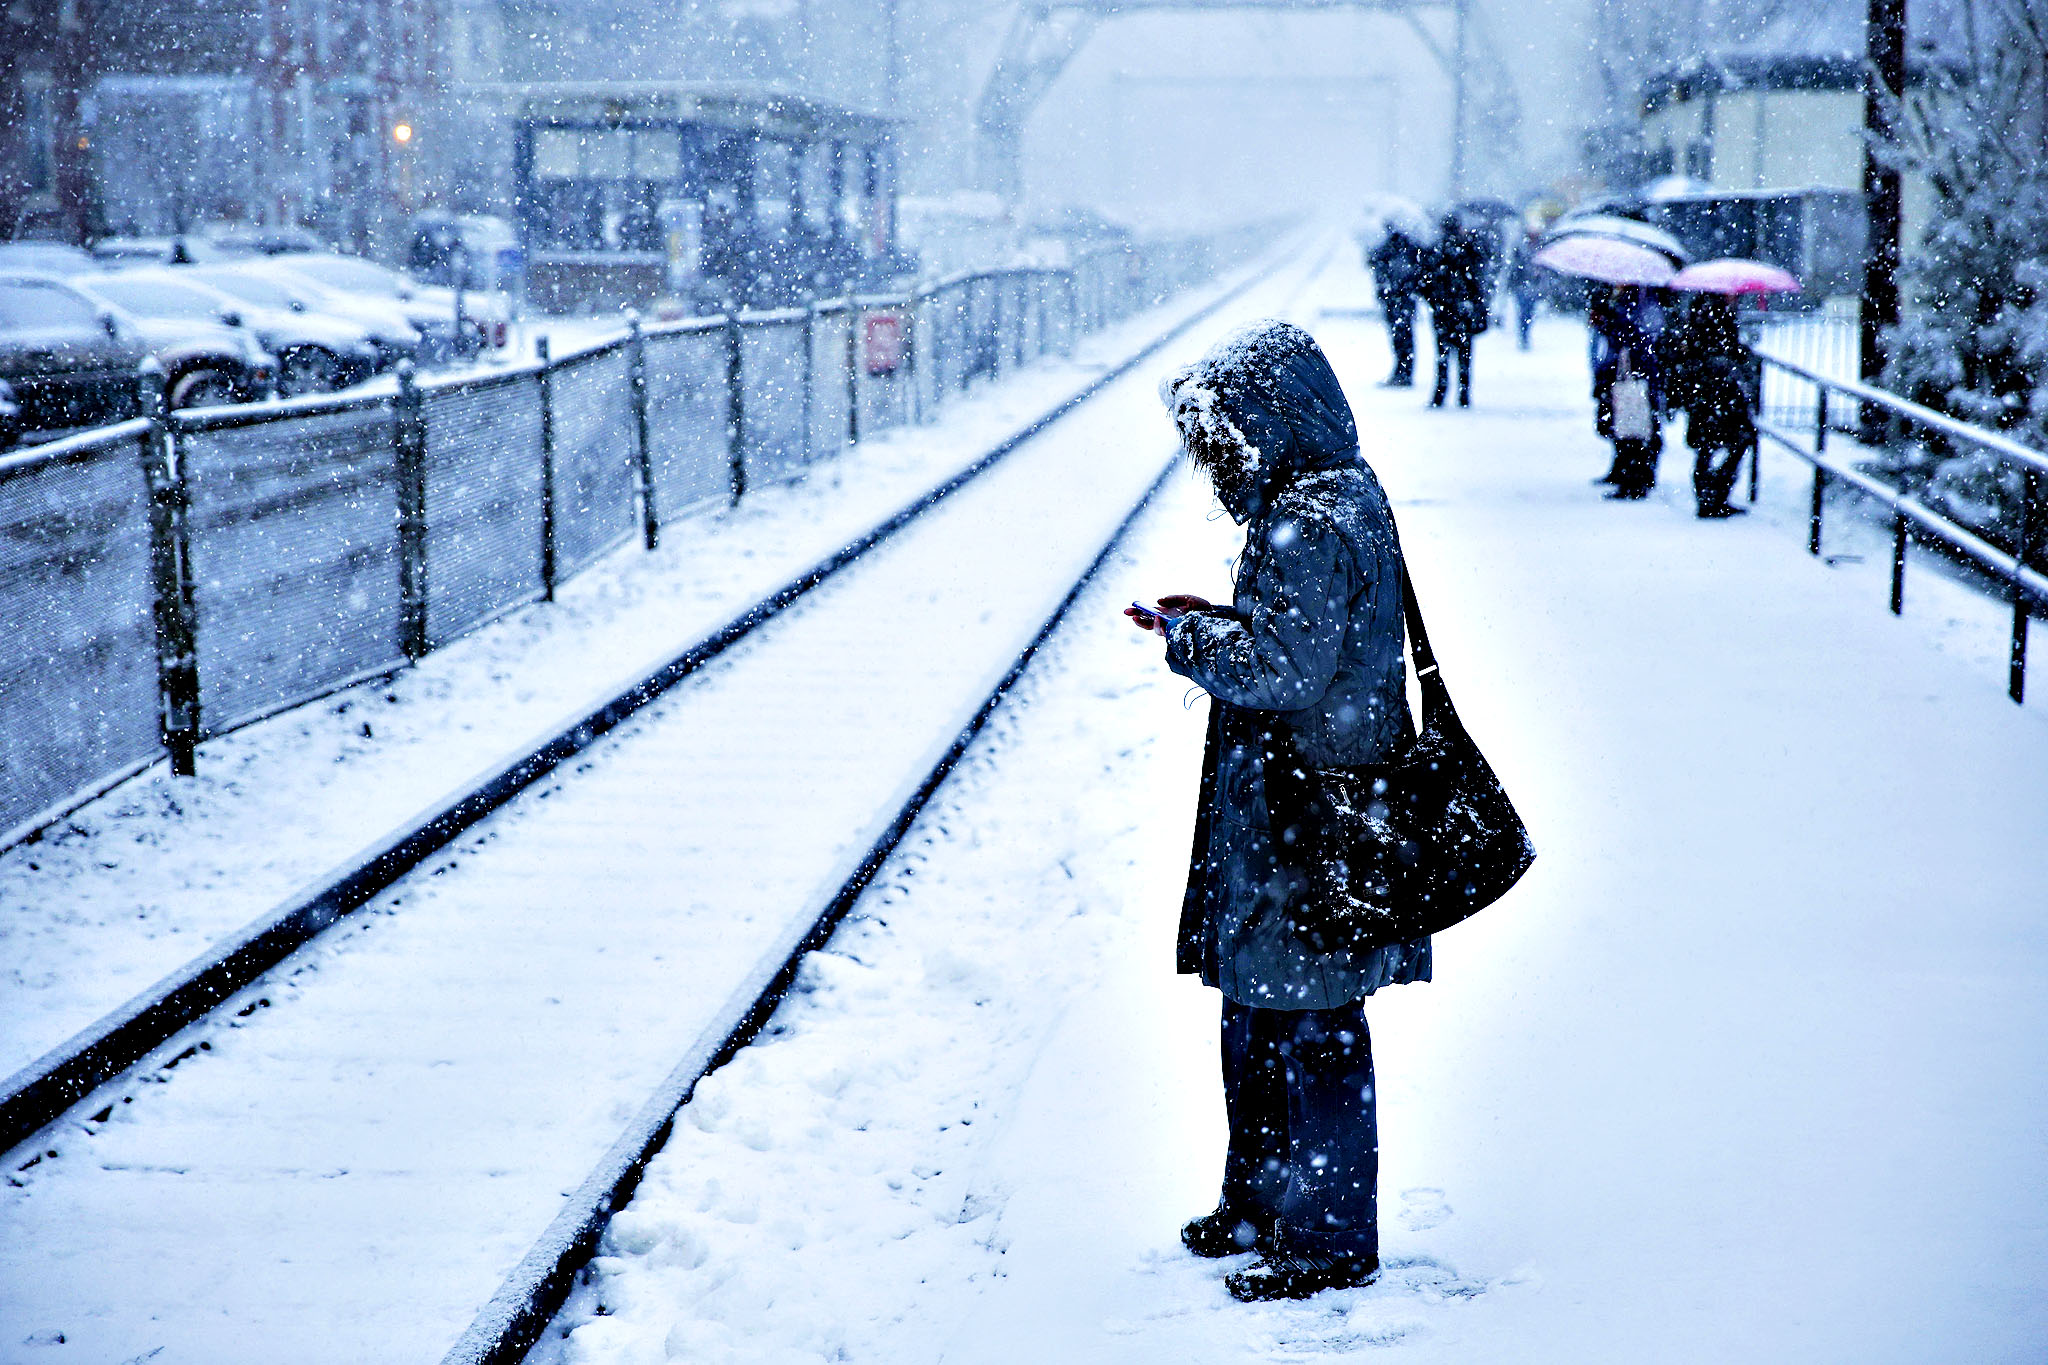 A commuter waits on a train during a winter snowstorm Tuesday, Dec. 10, 2013, in Philadelphia. Accumulations of 3 to 6 inches were expected as the National Weather Service issued a winter storm warning for the Eastern Seaboard, including Baltimore, Washington, D.C., Philadelphia and Wilmington